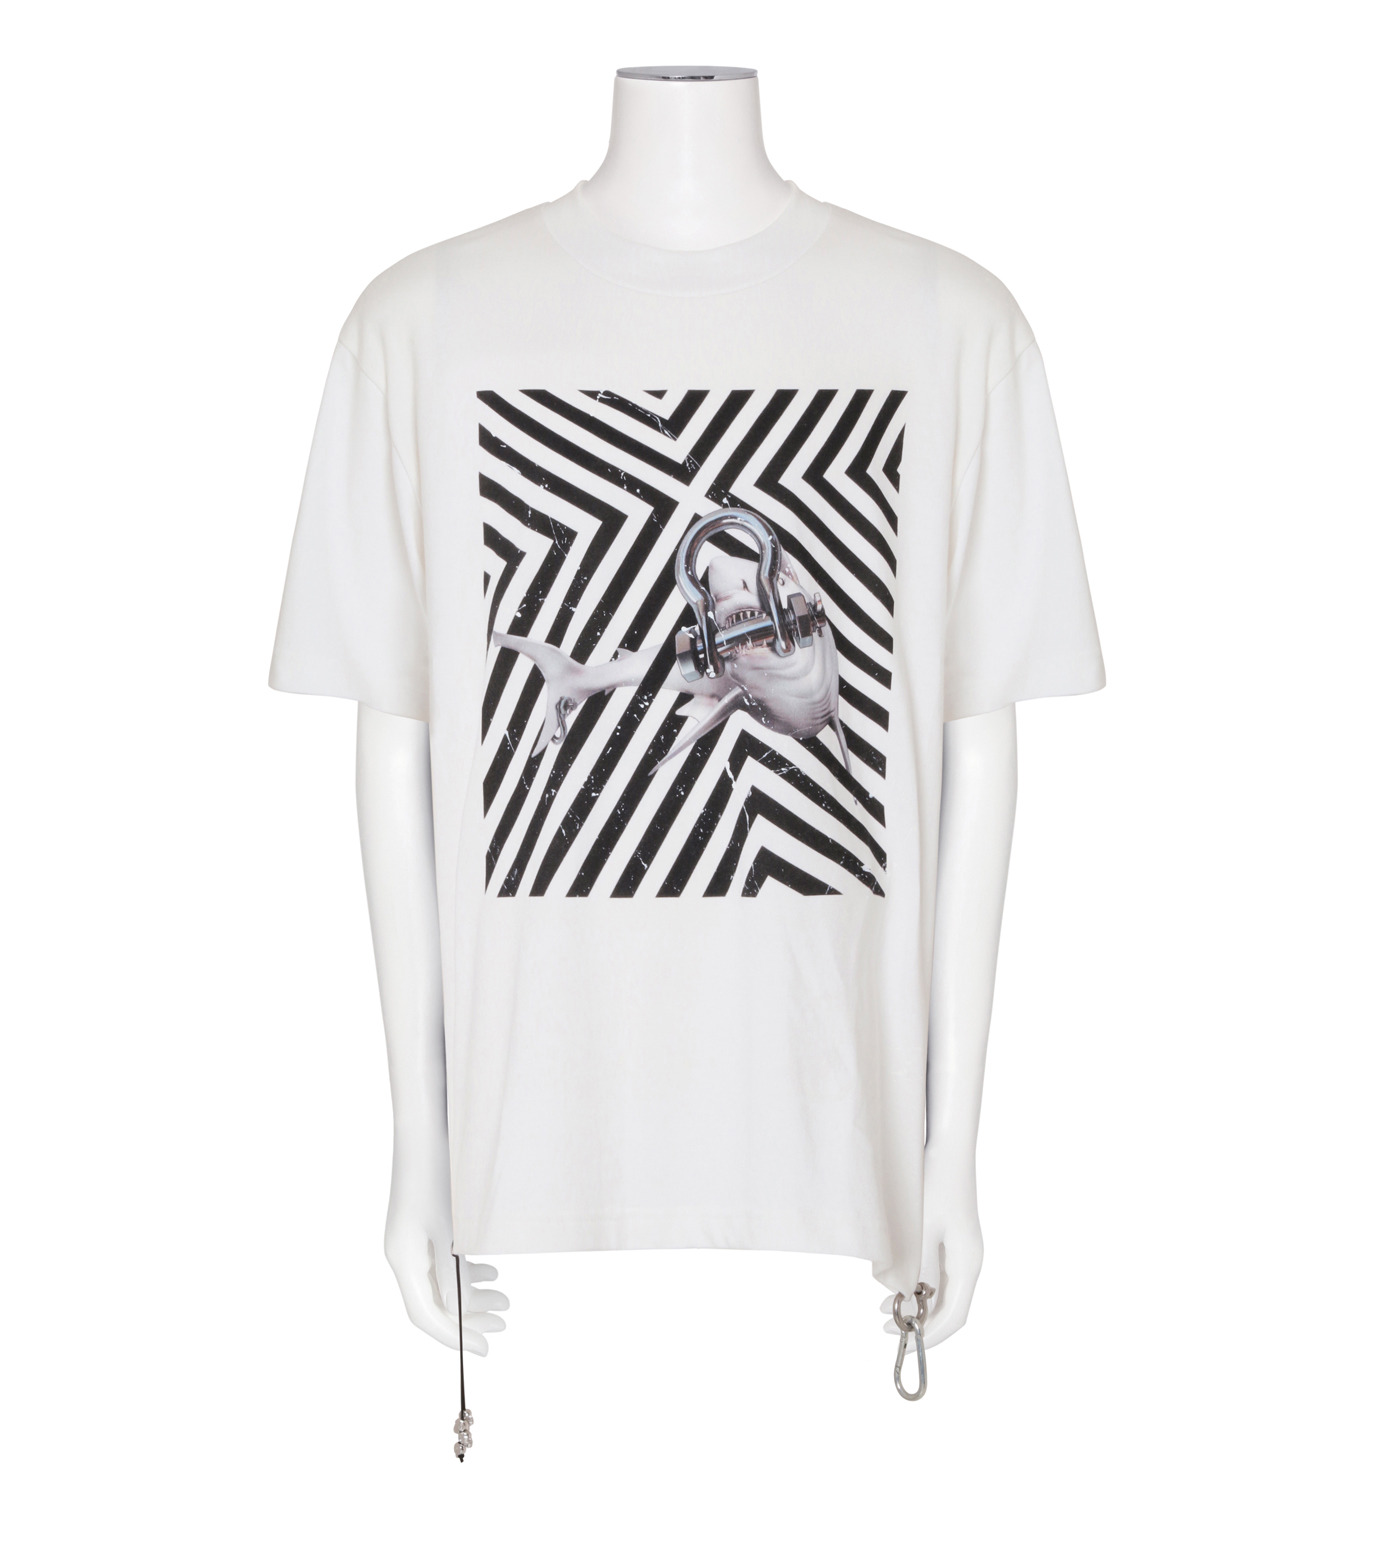 CAVIALE(カビアーレ)のPrinted T-WHITE(カットソー/cut and sewn)-C210-C215-4 拡大詳細画像1